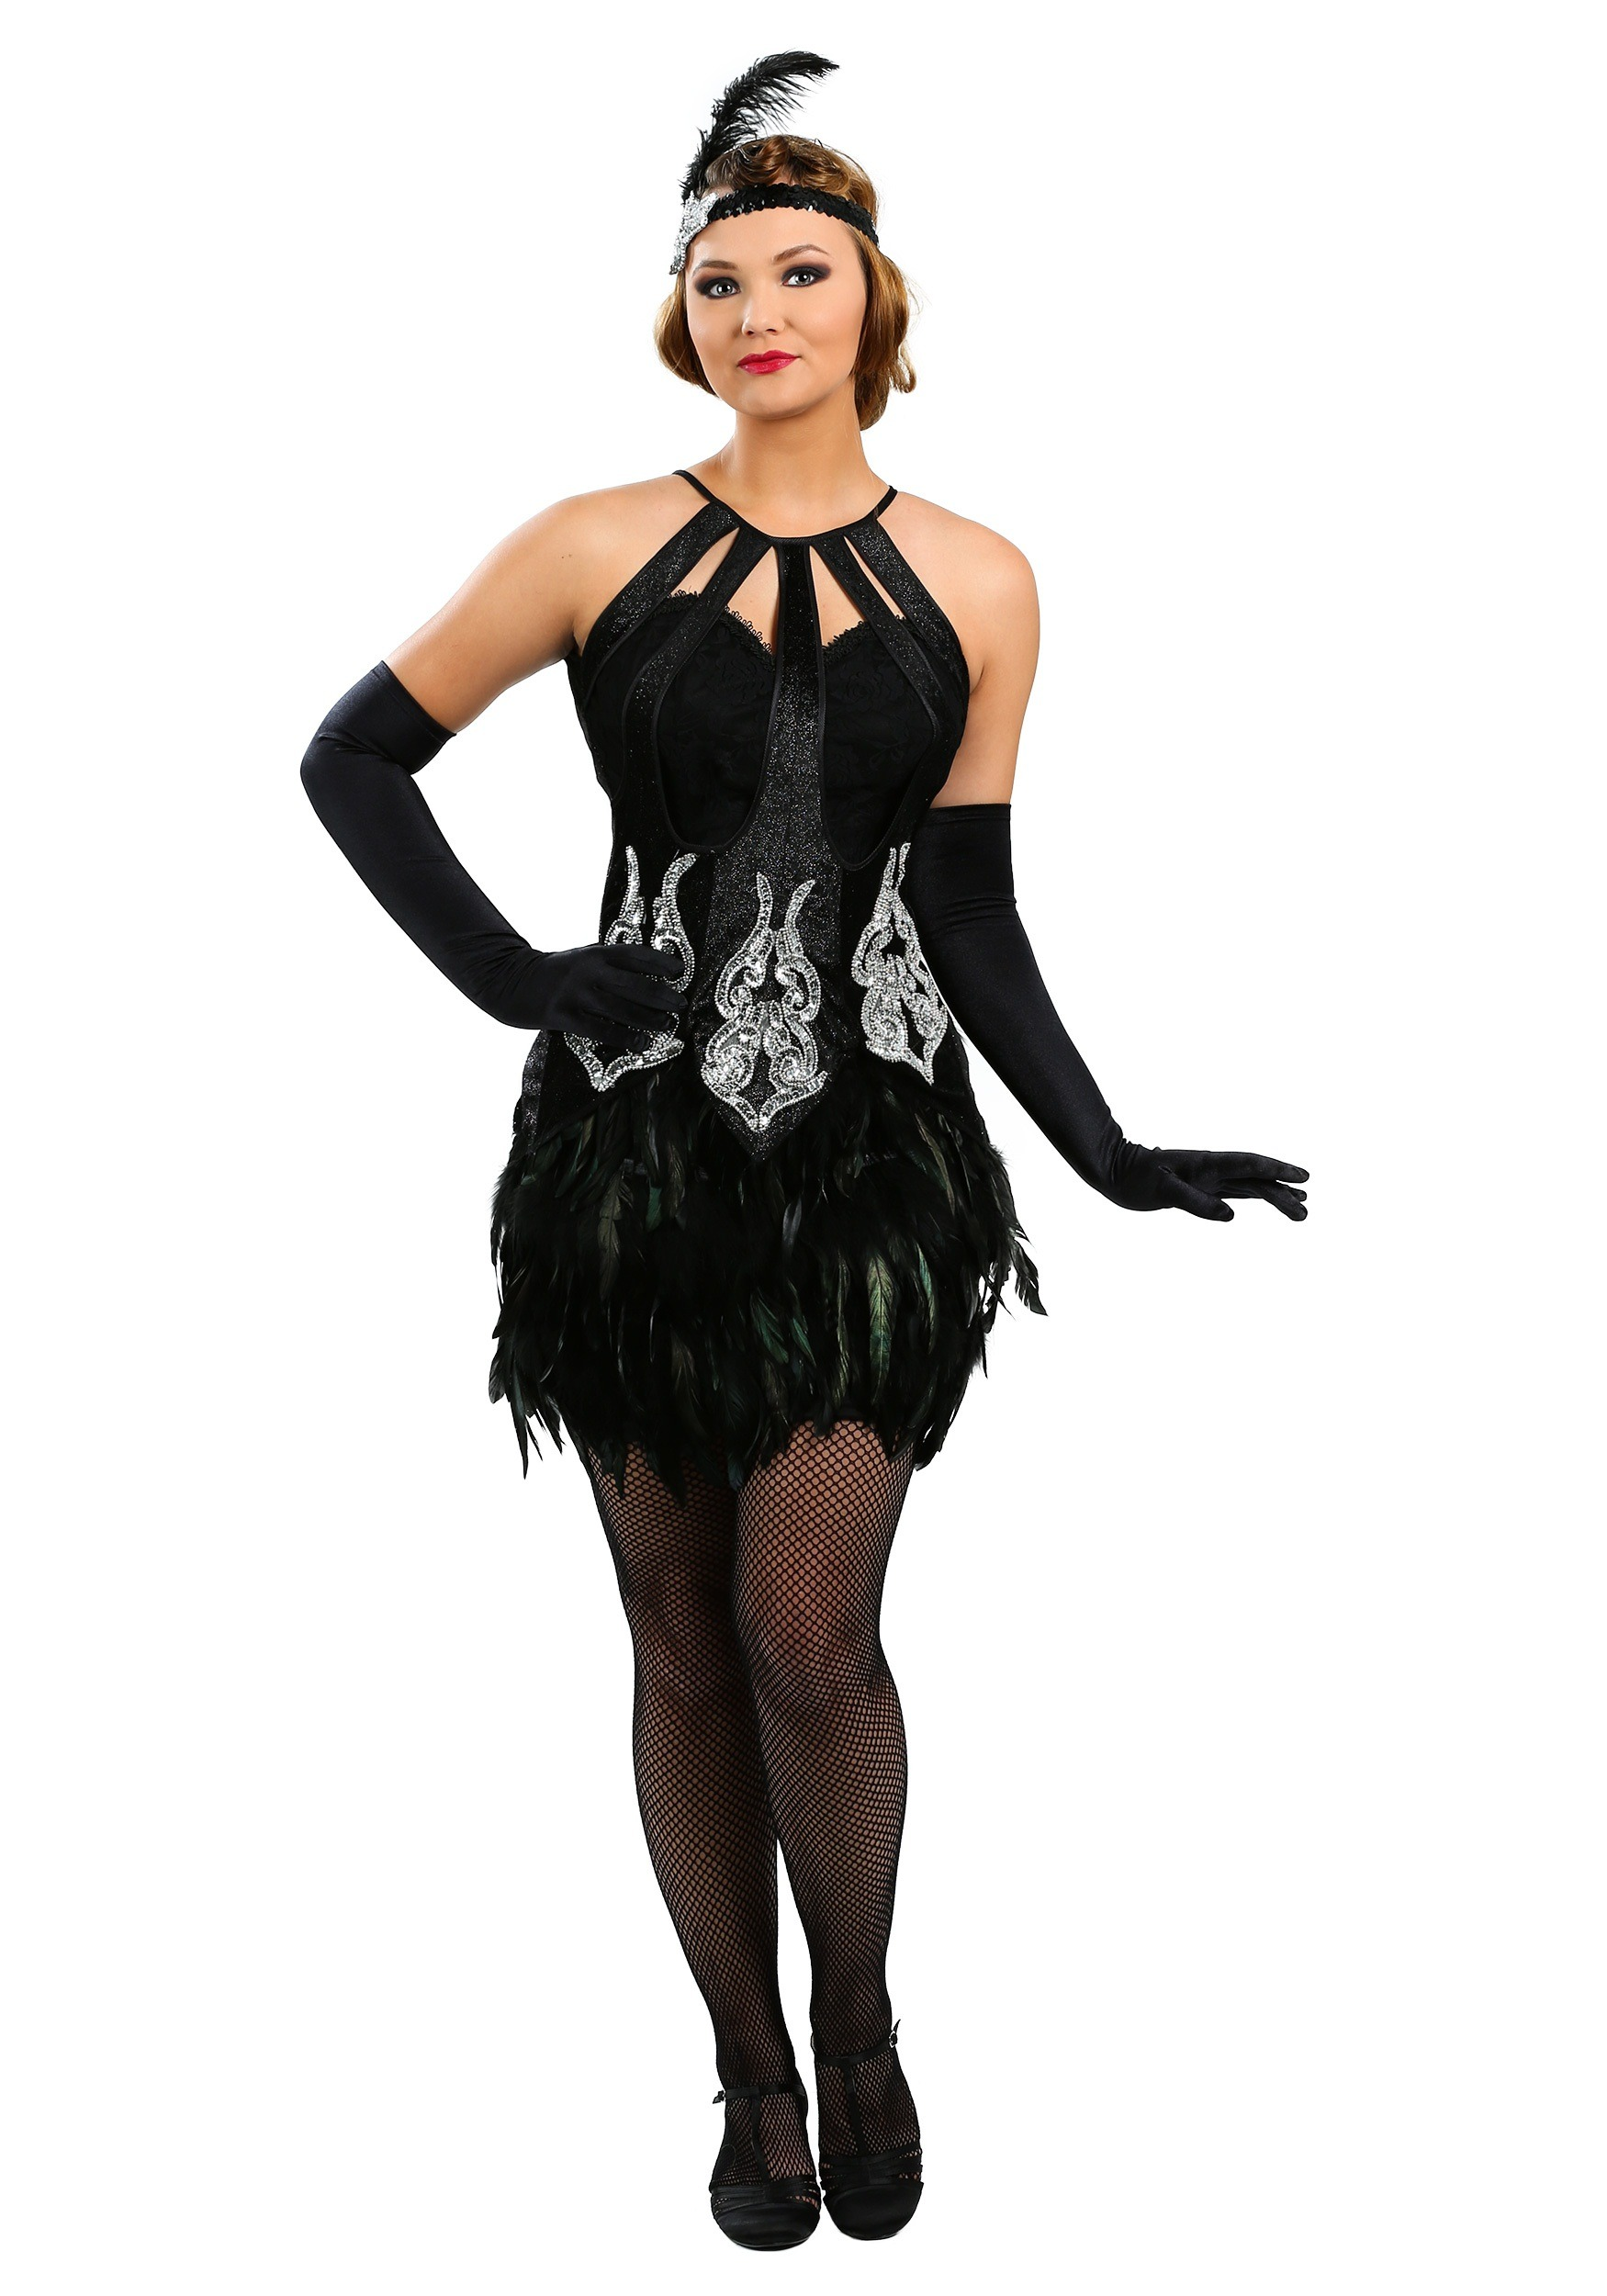 Feathered Showgirl Costume